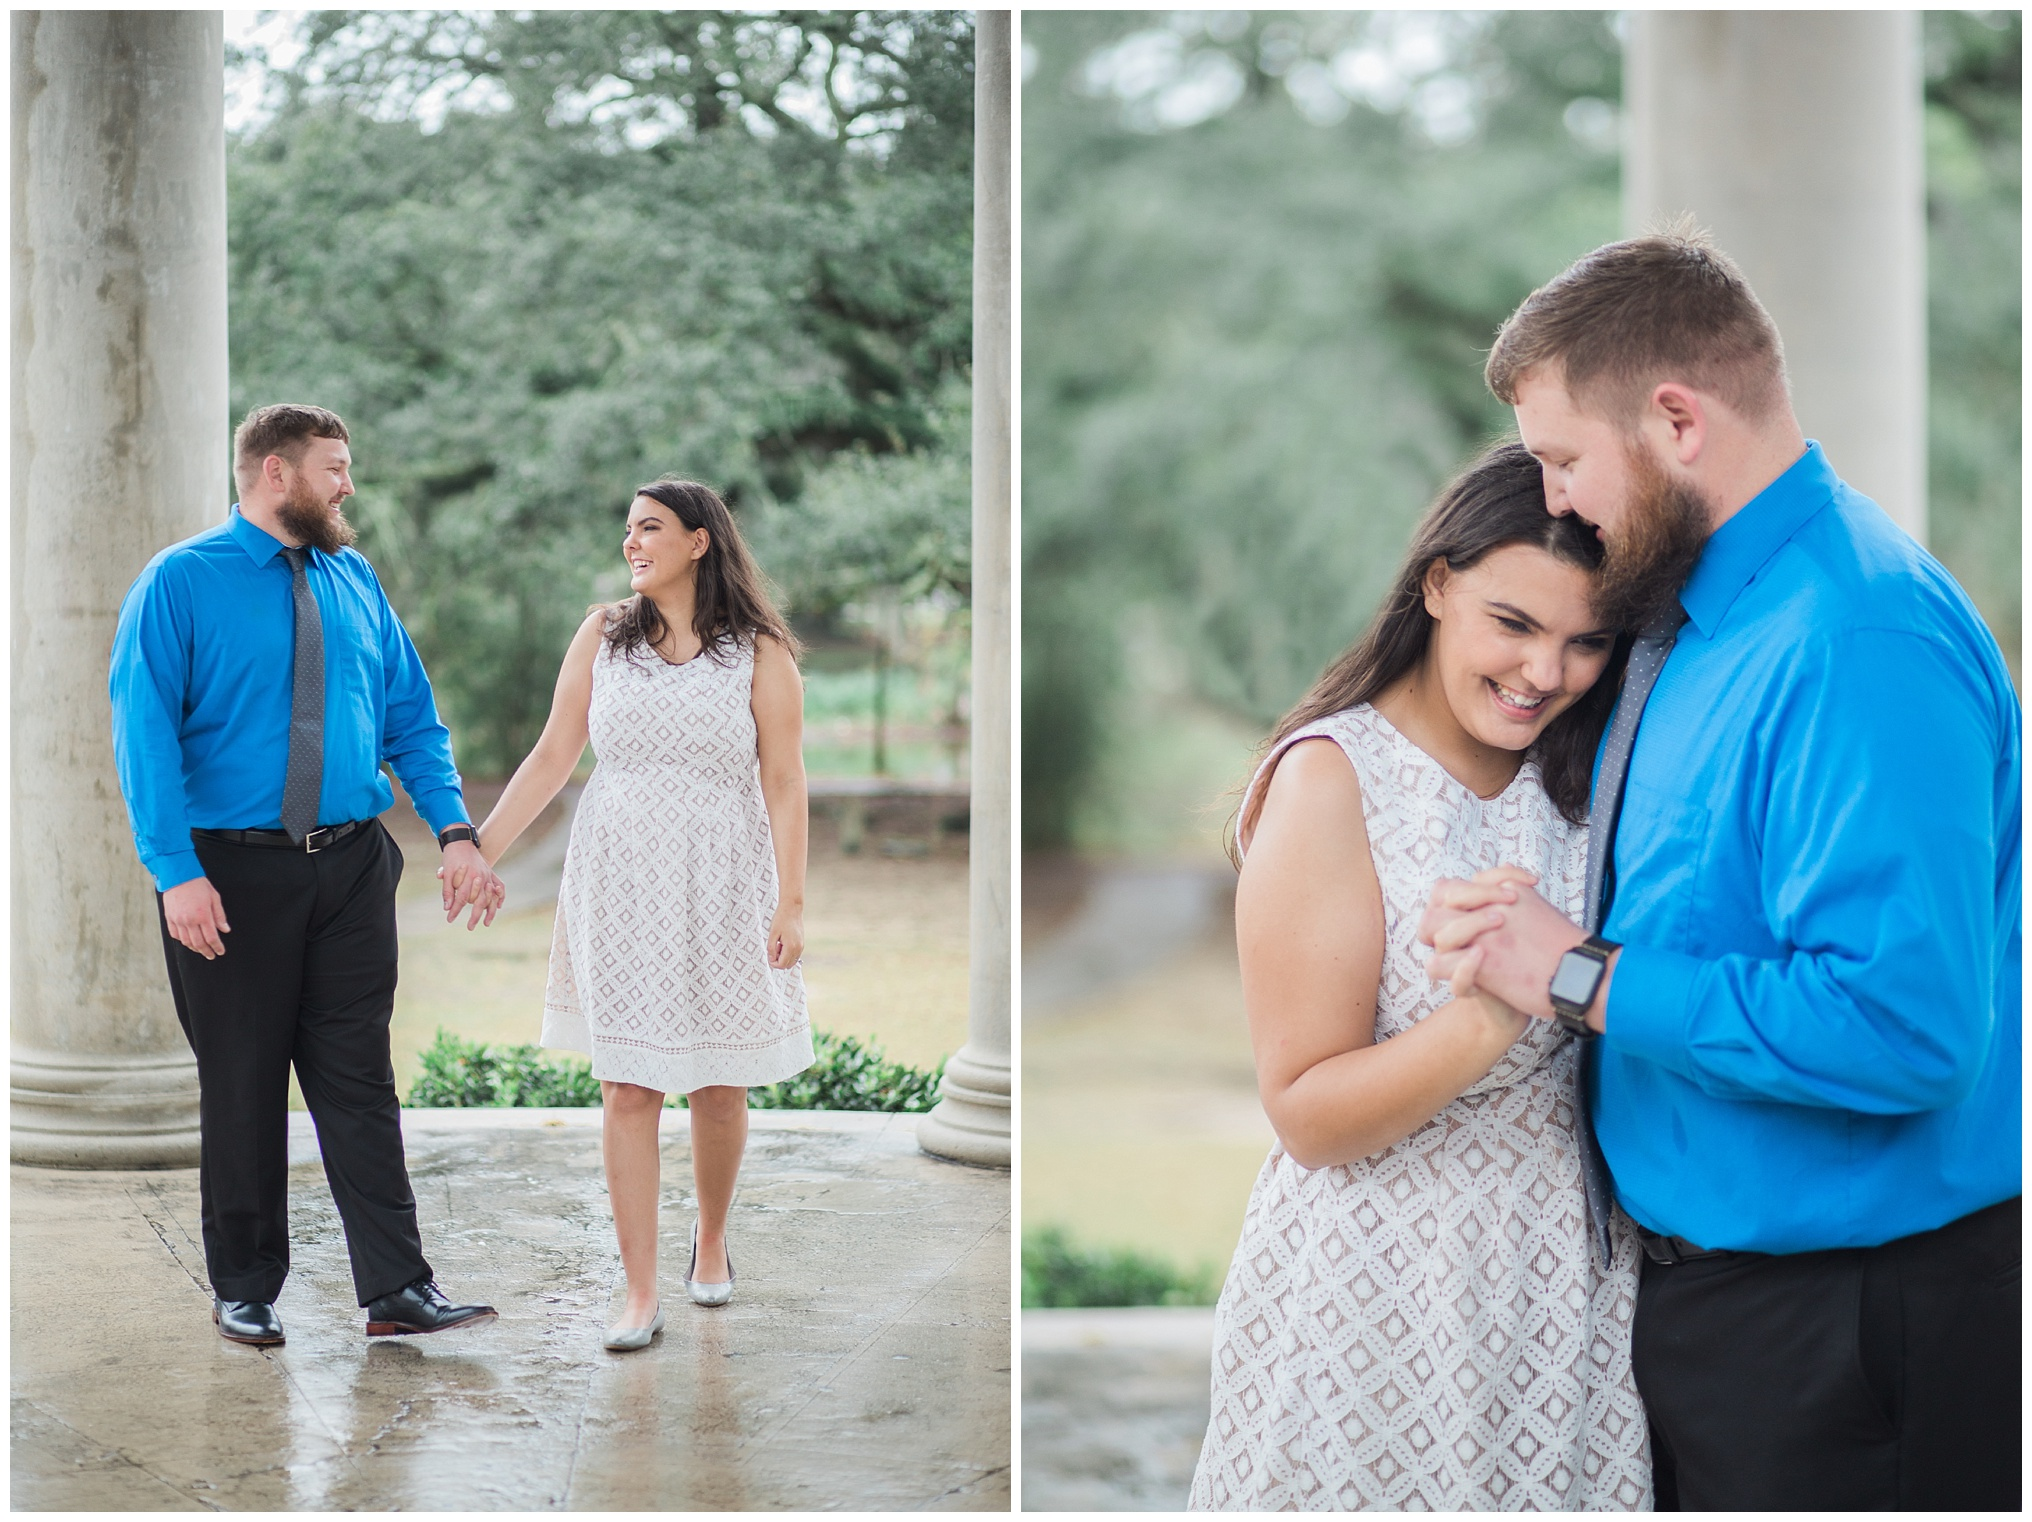 Click over to see more from this rainy, City Park engagement session.